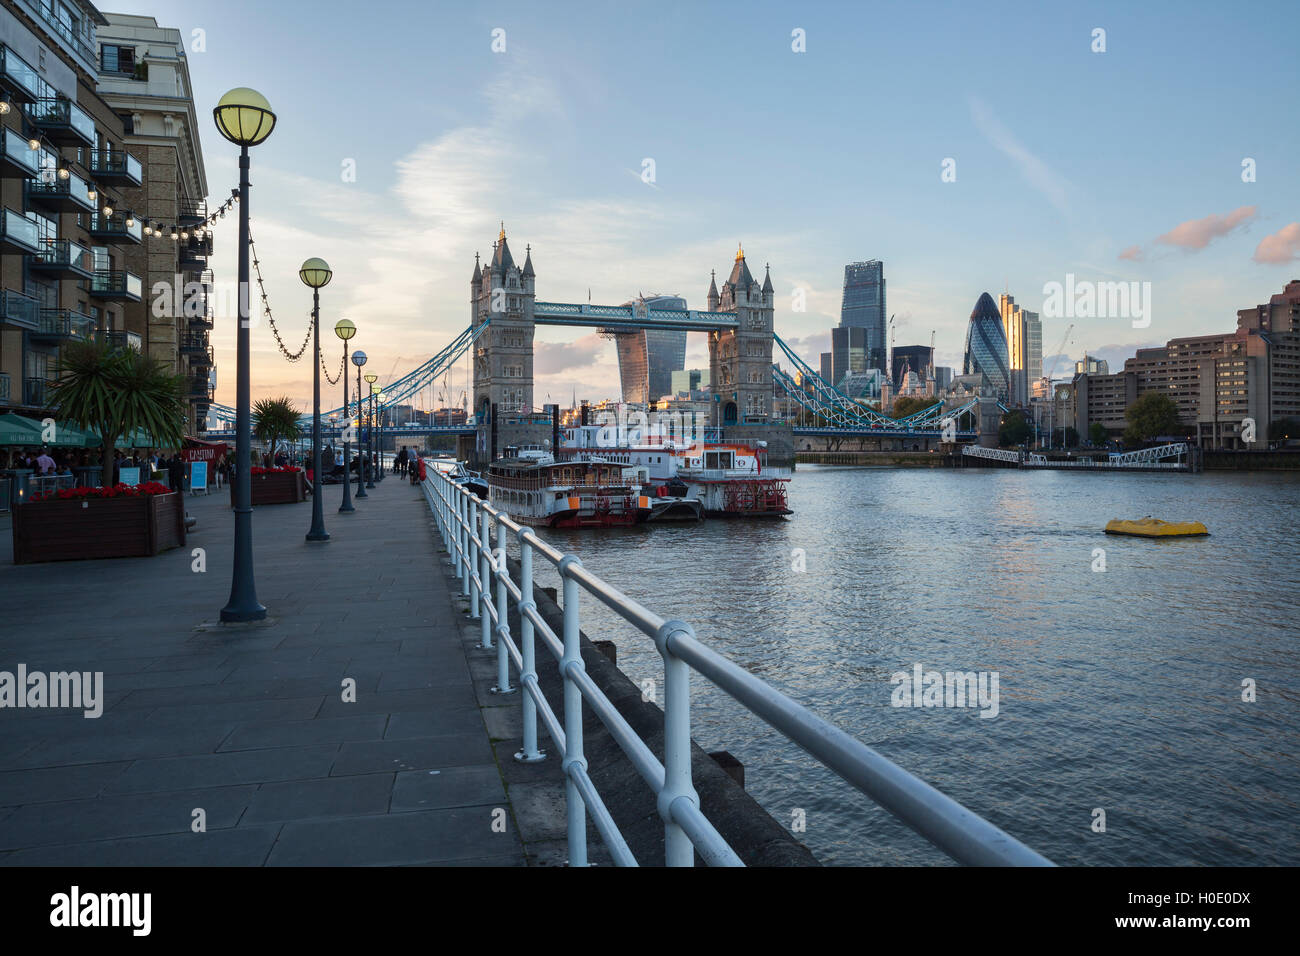 Tower Bridge and City of London from the Southbank of the River Thames, London, England, United Kingdom, Europe - Stock Image